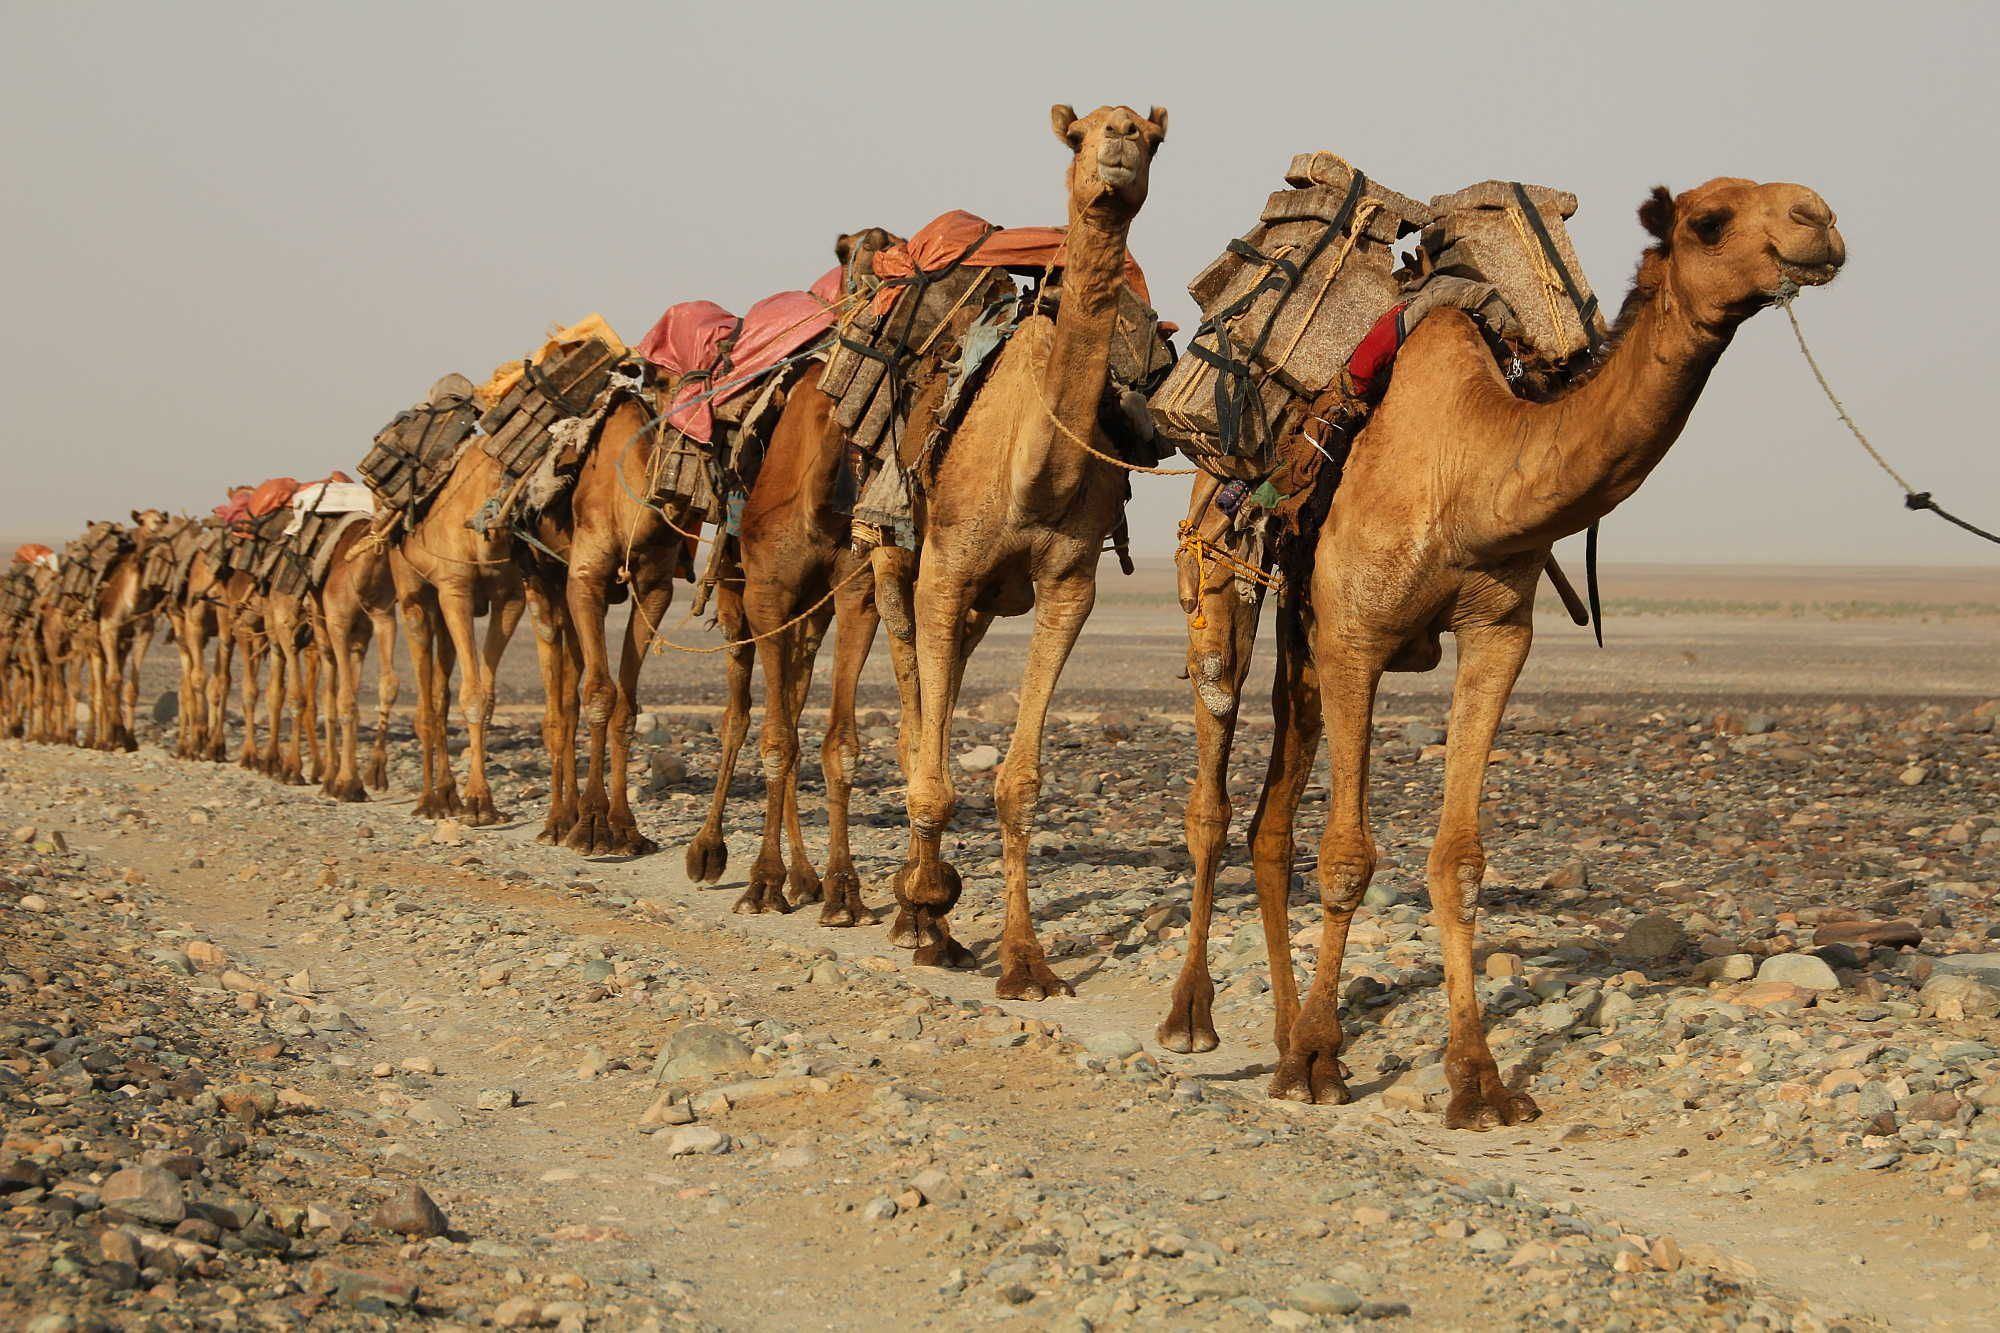 Elegant The Group Was On A Quest To Find The Ruins Of An Ancient, Remote Outposta Destination That Would Have Taken Days To Reach By Camel This Was A